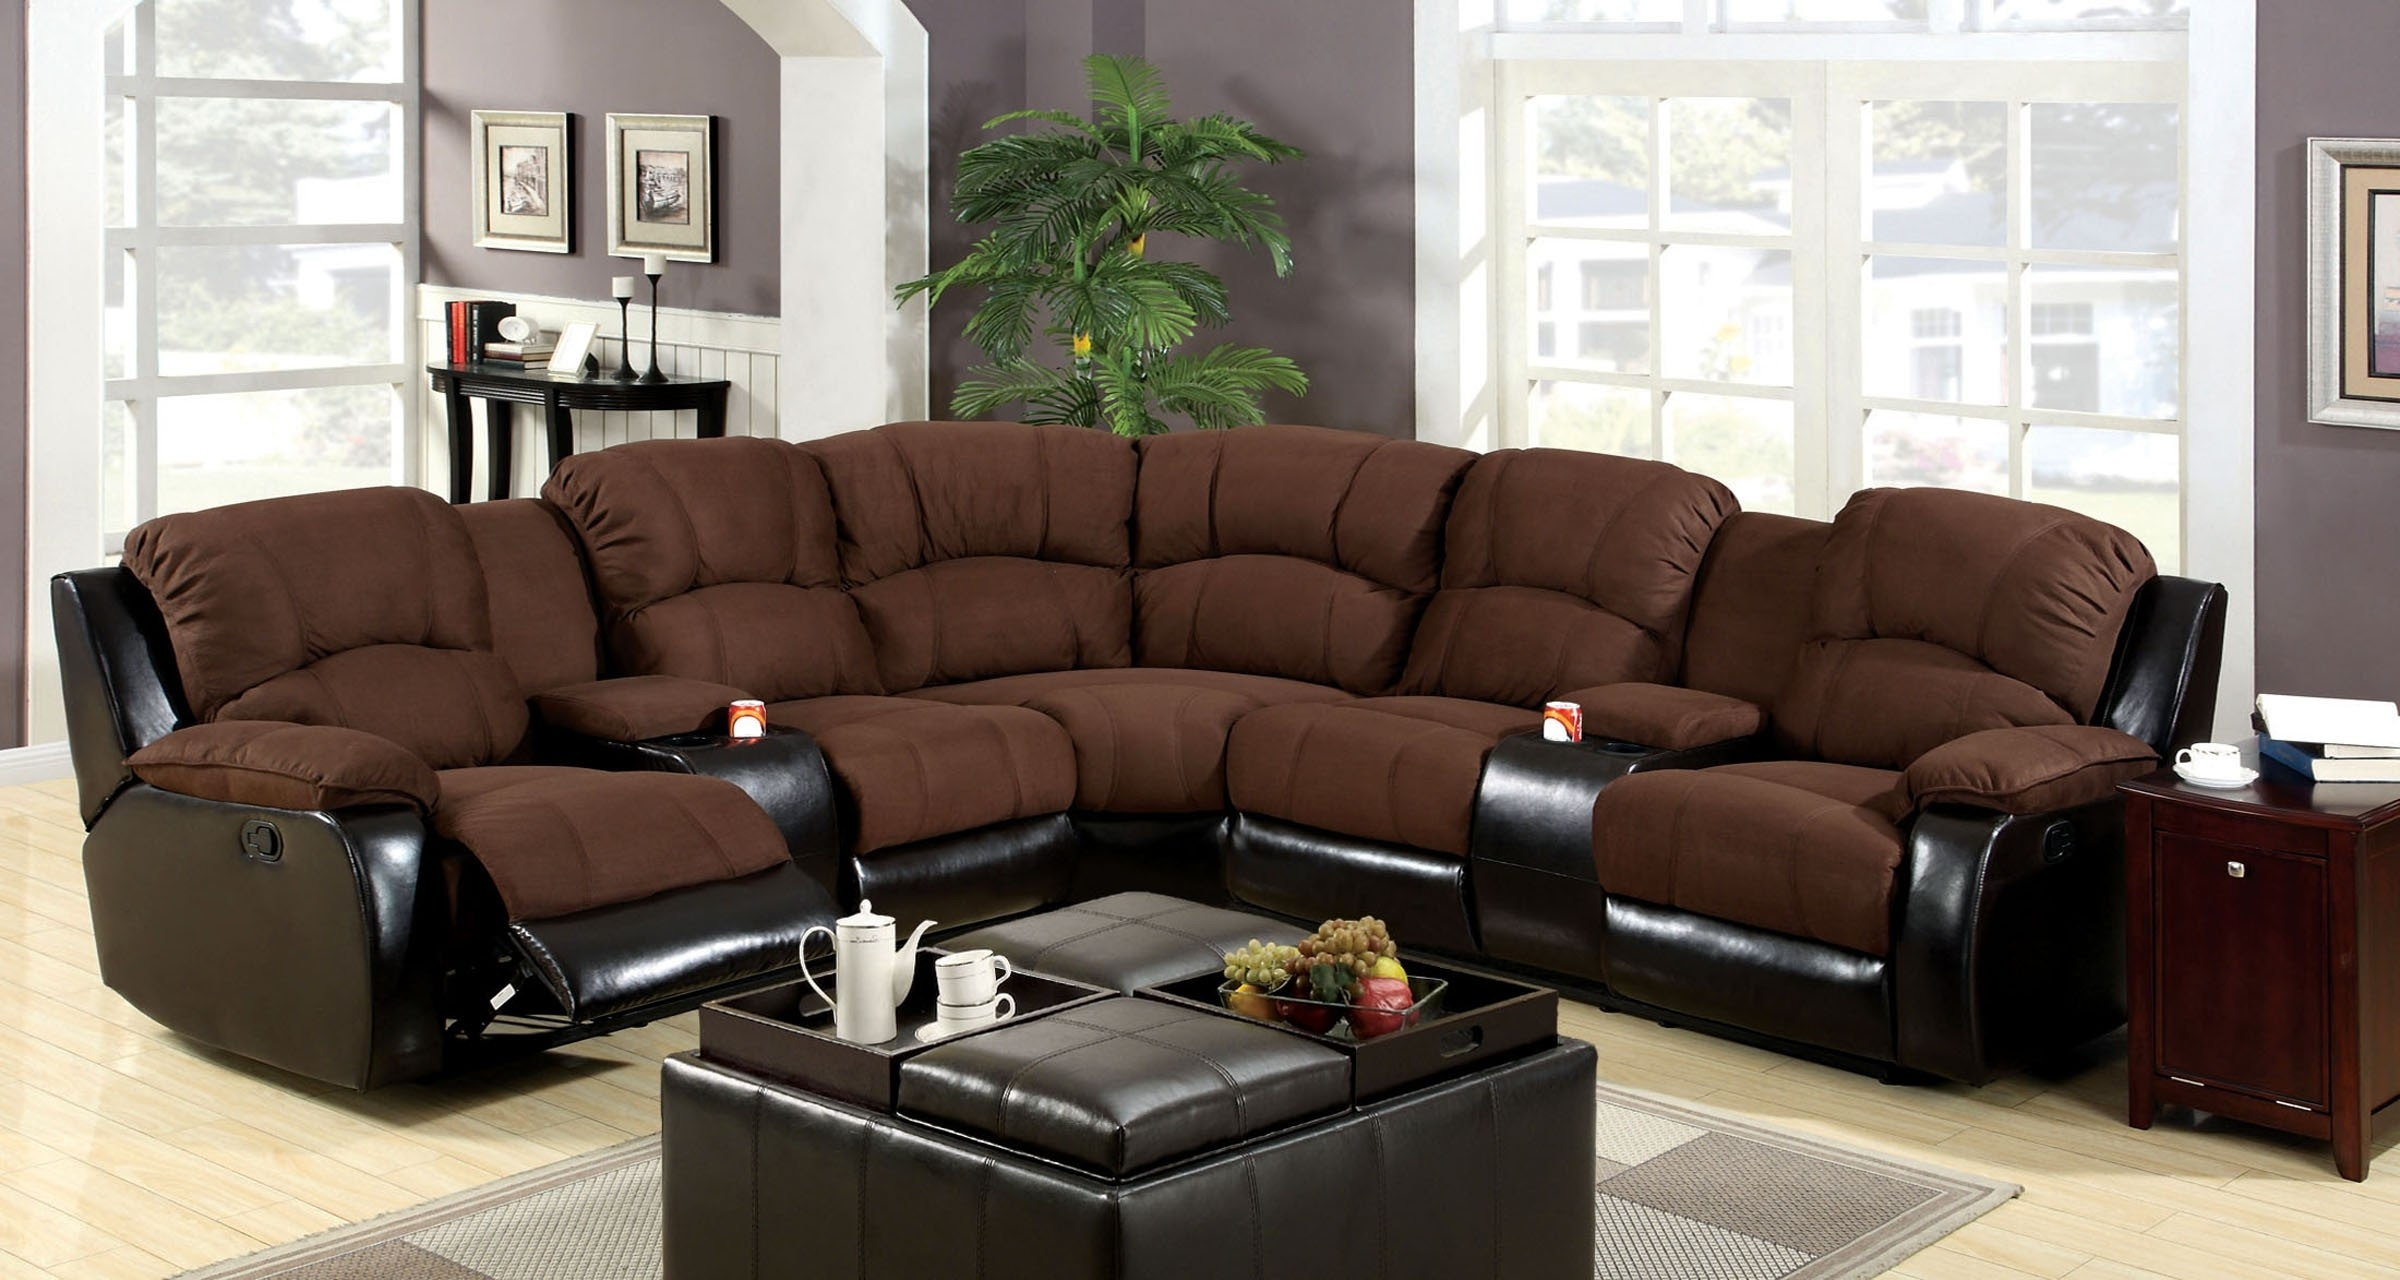 Most Recently Released Couch With Cup Holders In Arms Reclining Sectional Sofas For Small Regarding Sectional Sofas With Cup Holders (Gallery 1 of 15)